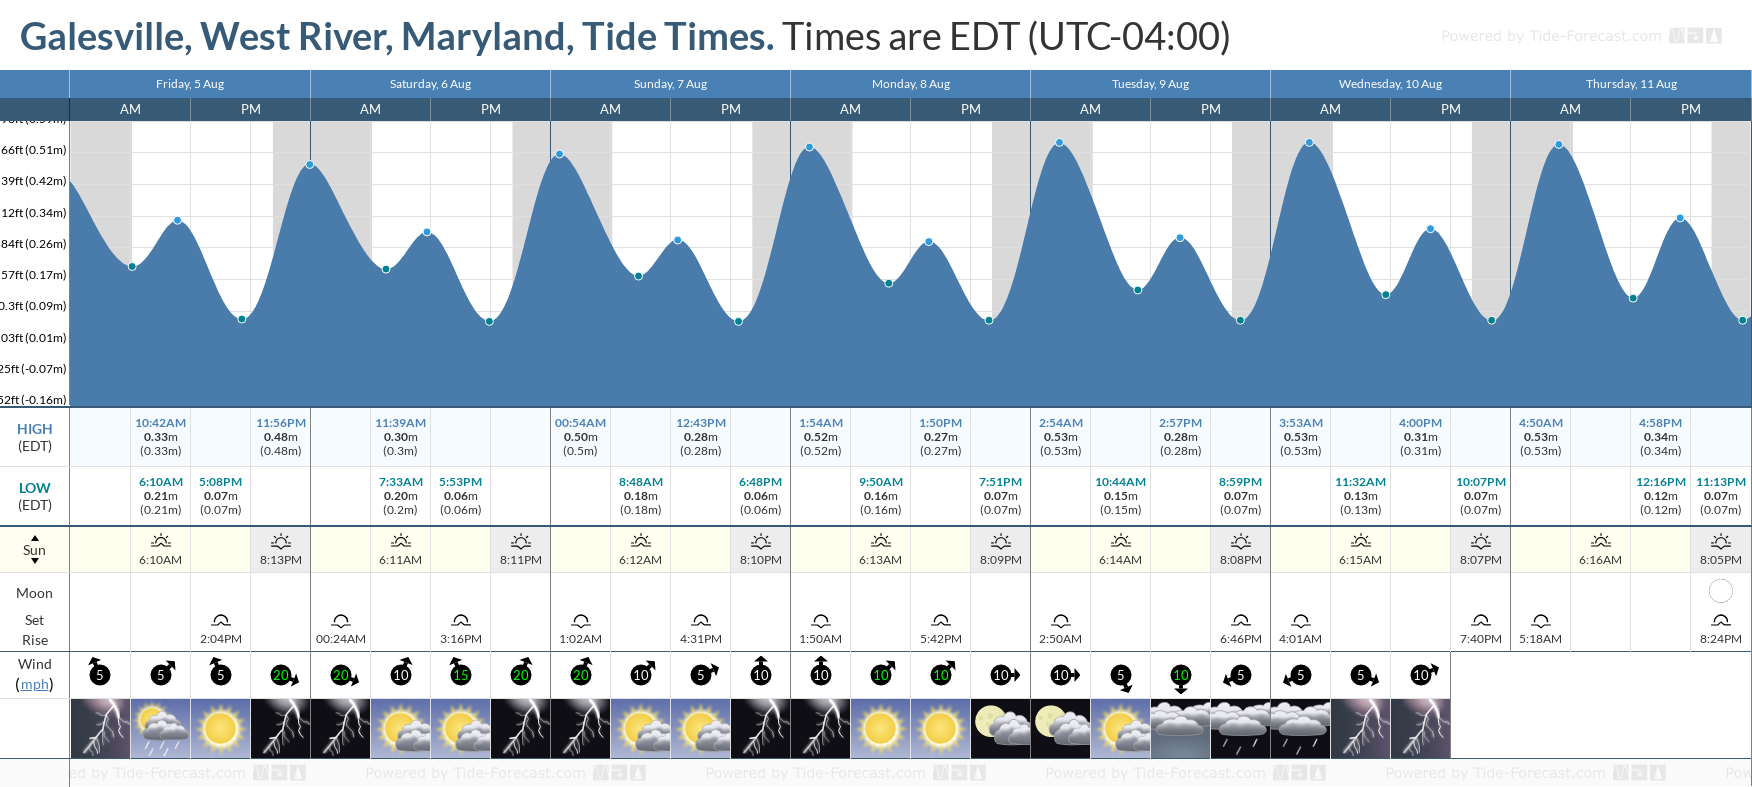 Galesville, West River, Maryland Tide Chart including high and low tide tide times for the next 7 days